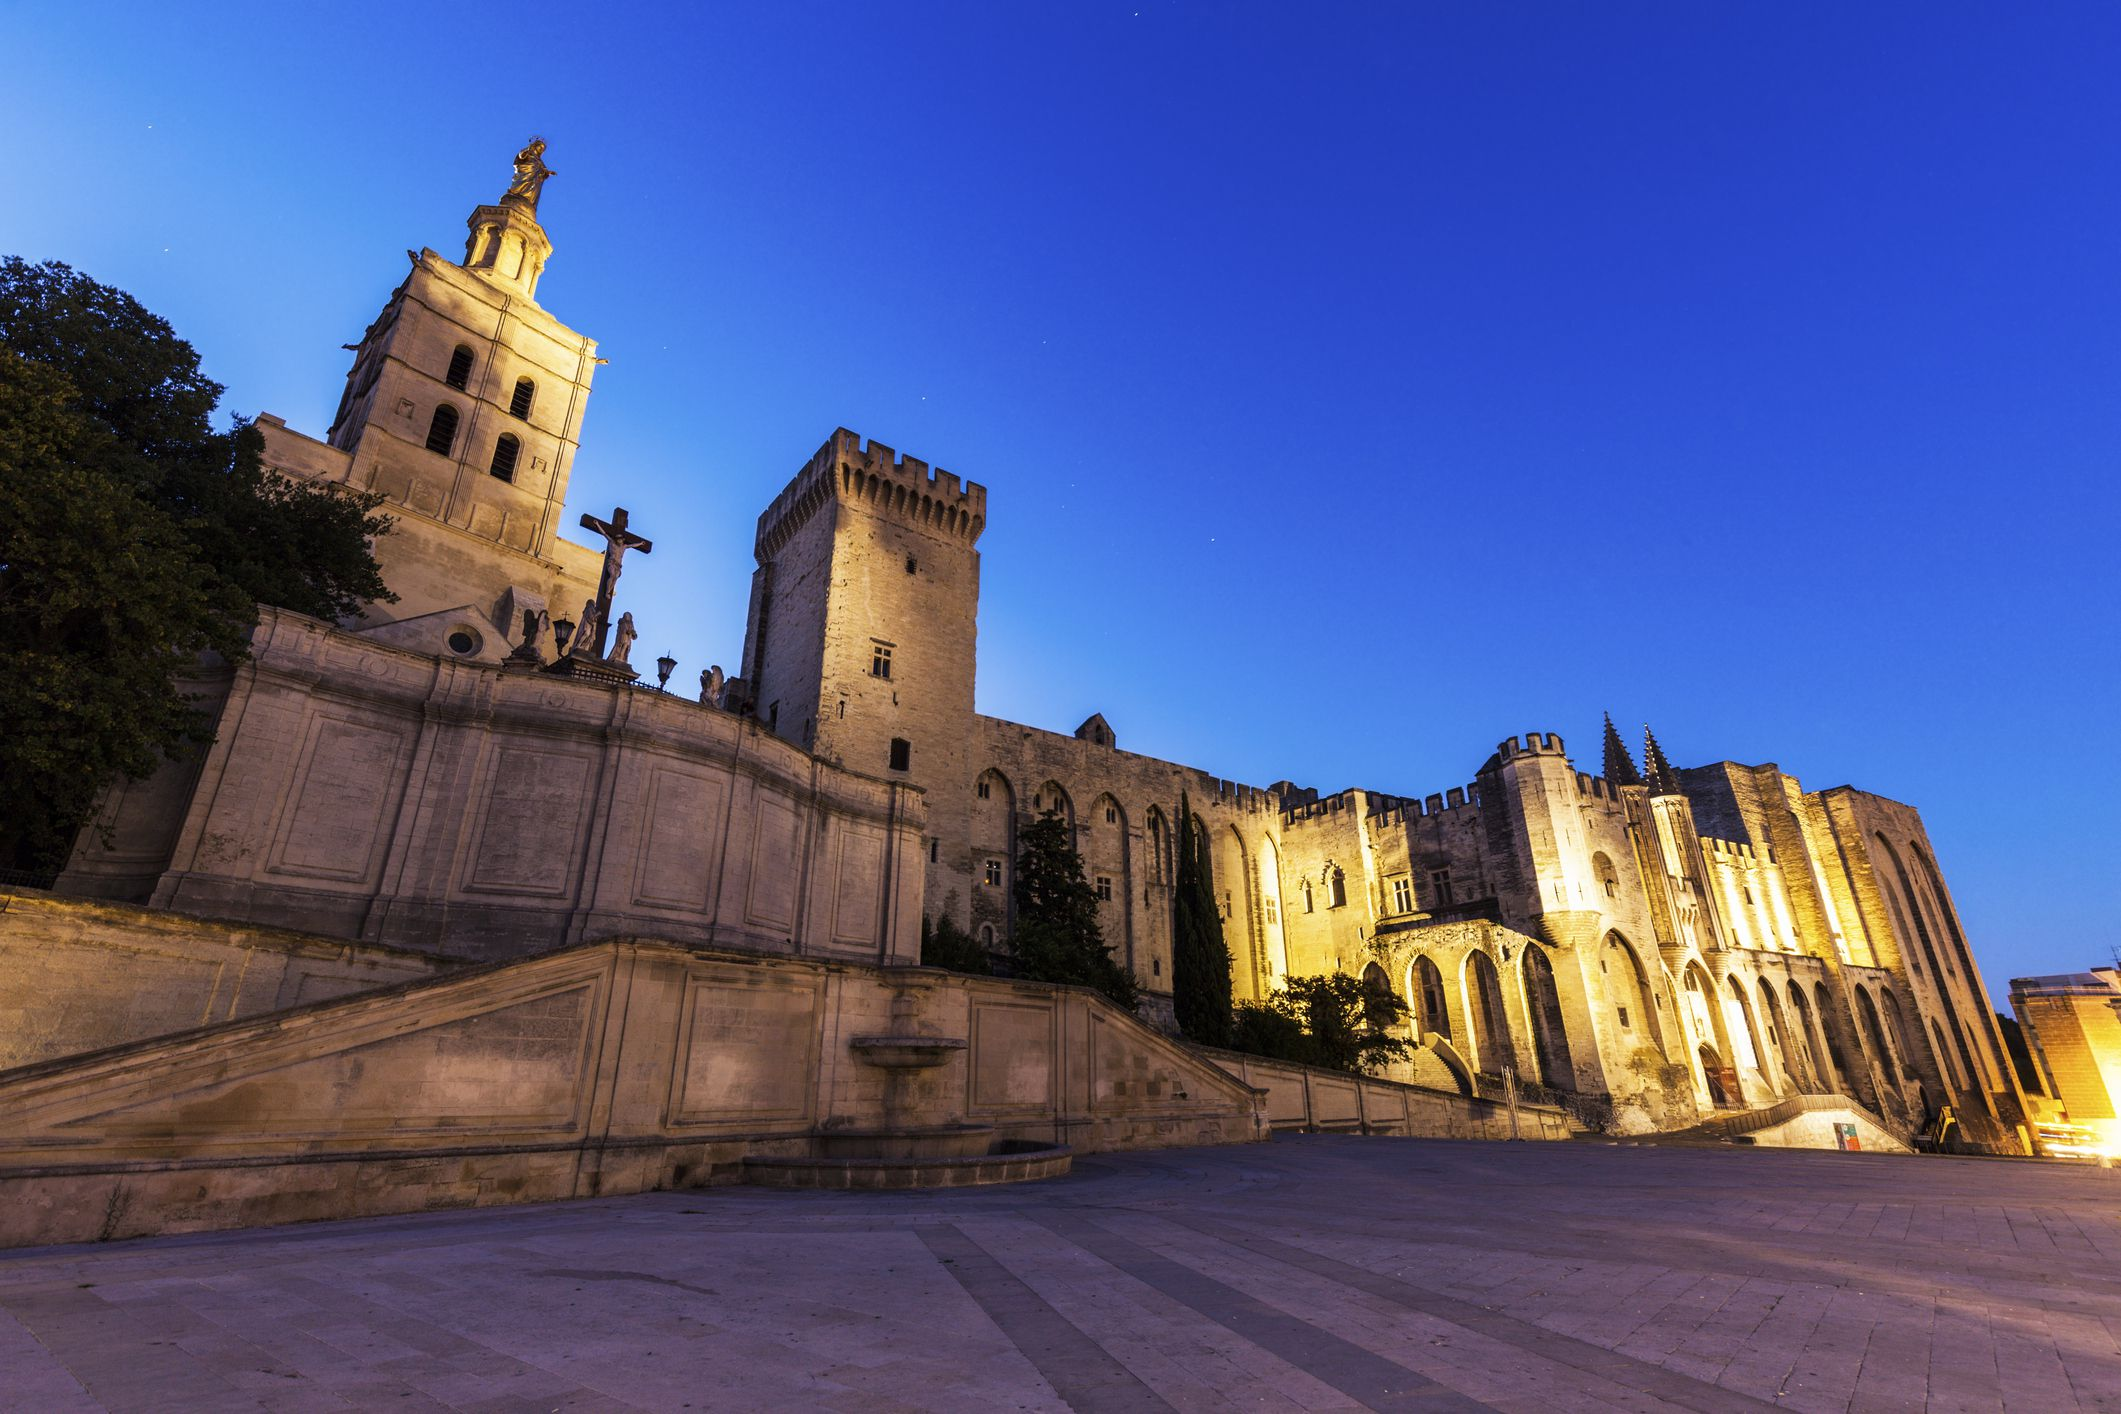 Avignon Papacy - When the Popes Resided in France